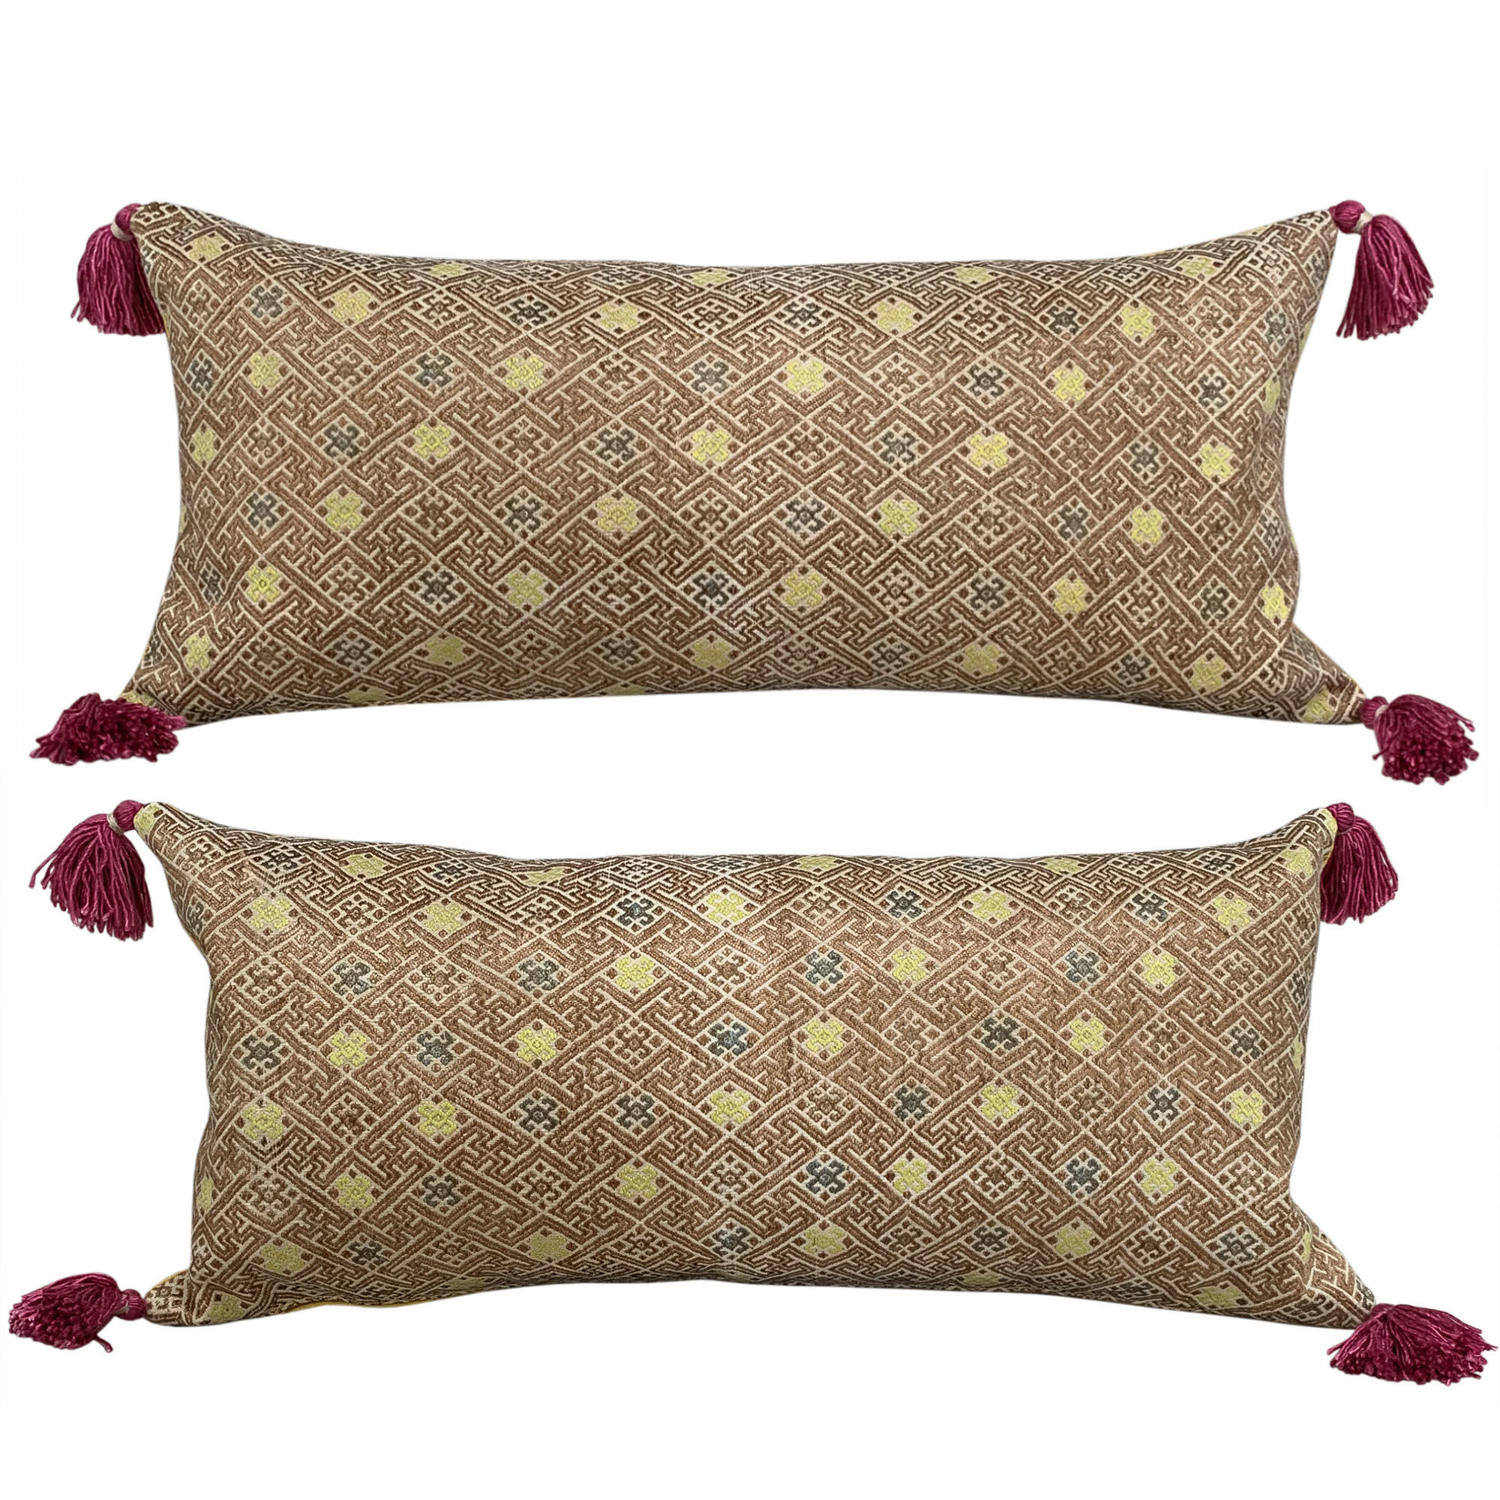 Zhuang cushions with pink tassels